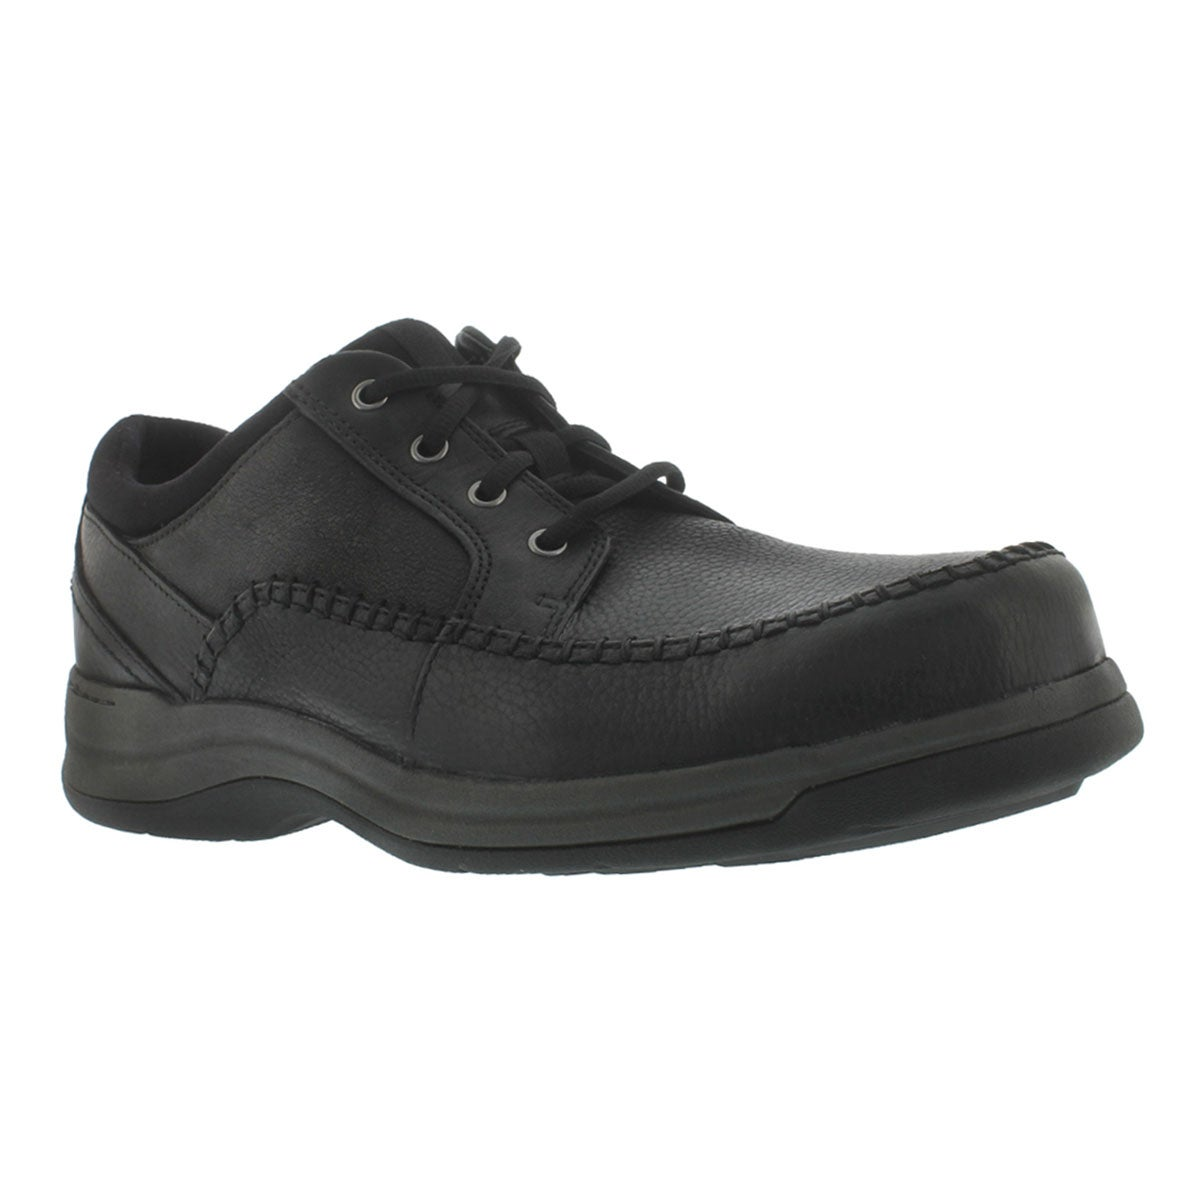 Xxx Wide Width Shoes For Men